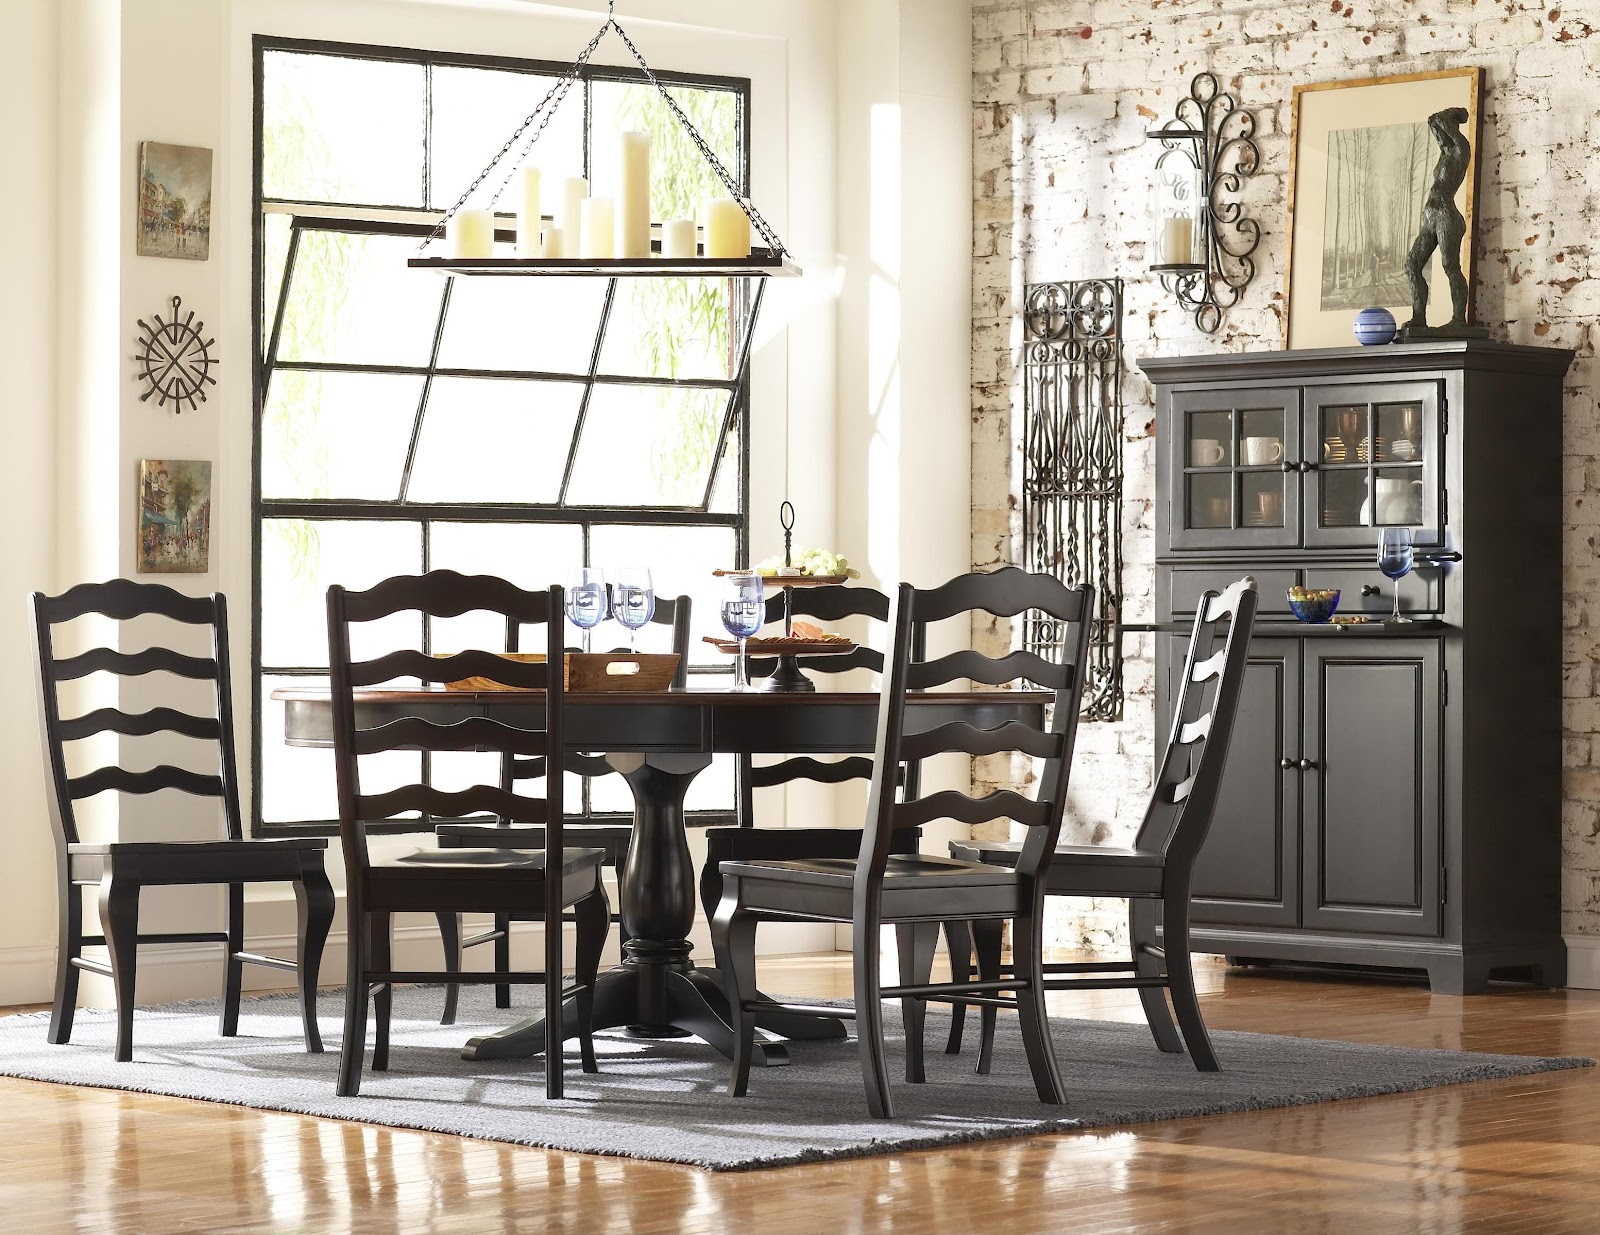 Knoxville Wholesale Furniture: Choices Casual Dining by Broyhill Furniture